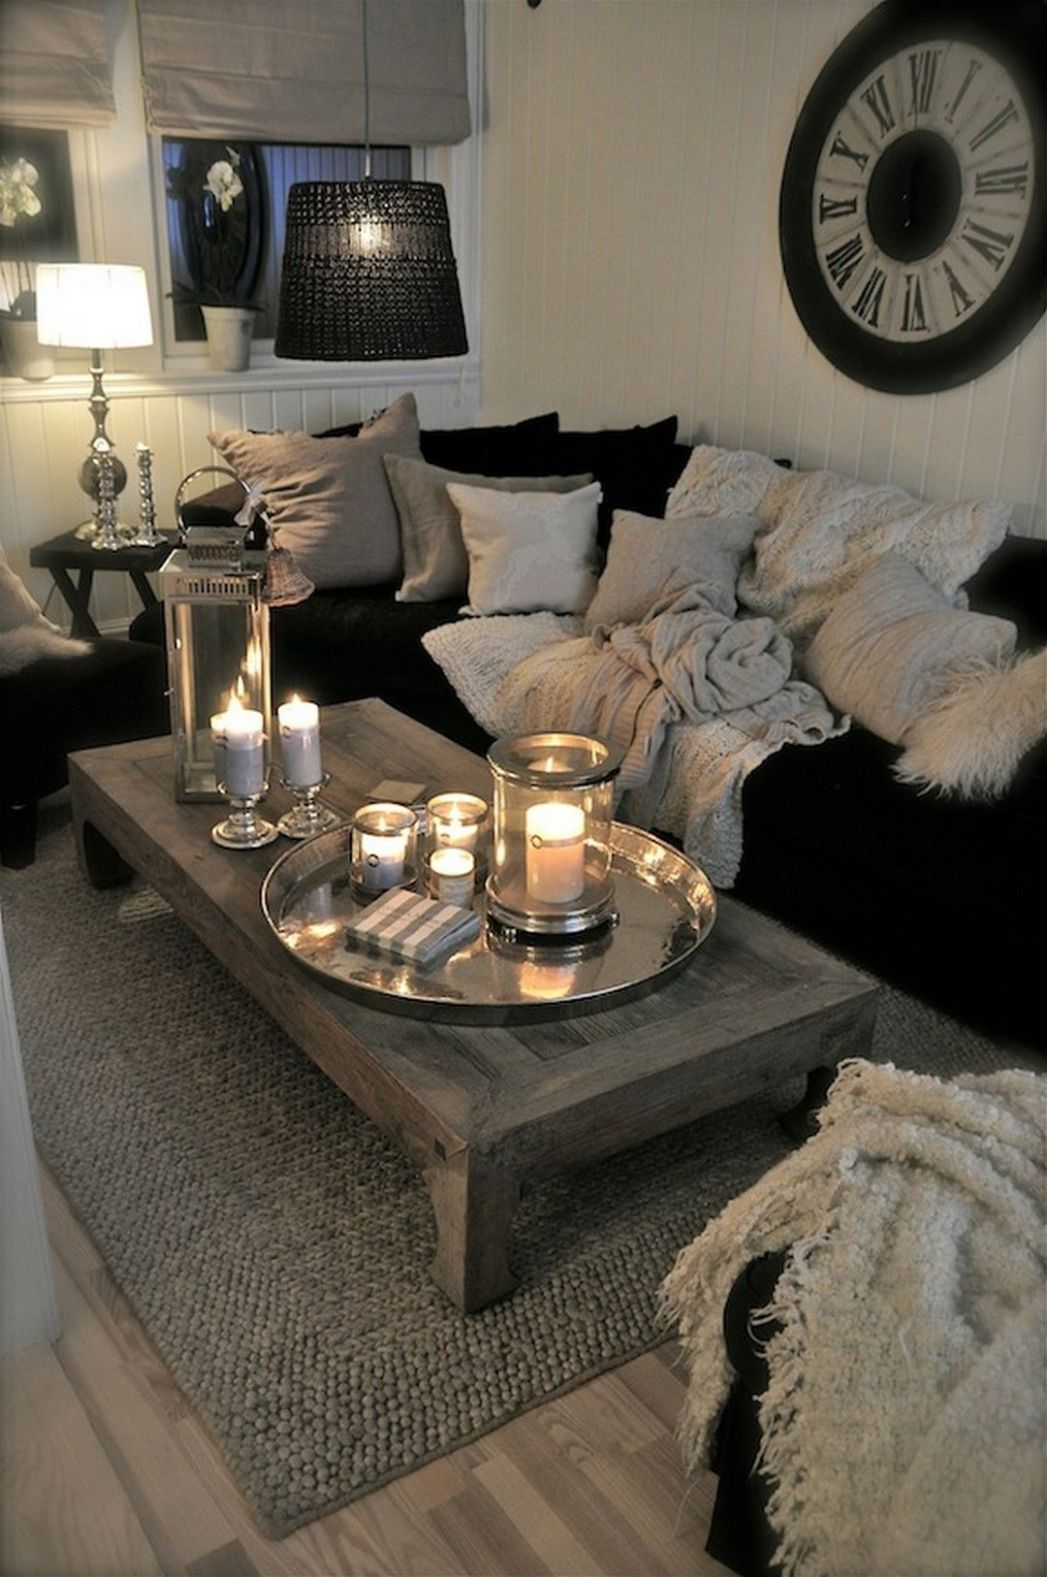 Awesome Picture of First Apartment Ideas (With images) | Apartment ..